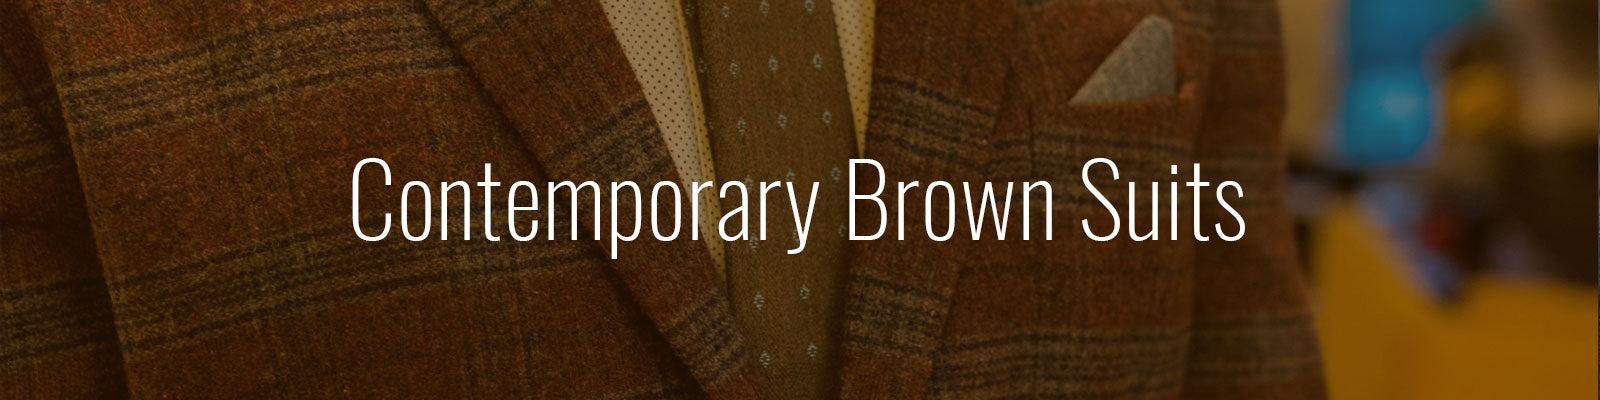 Contemporary Brown Suits